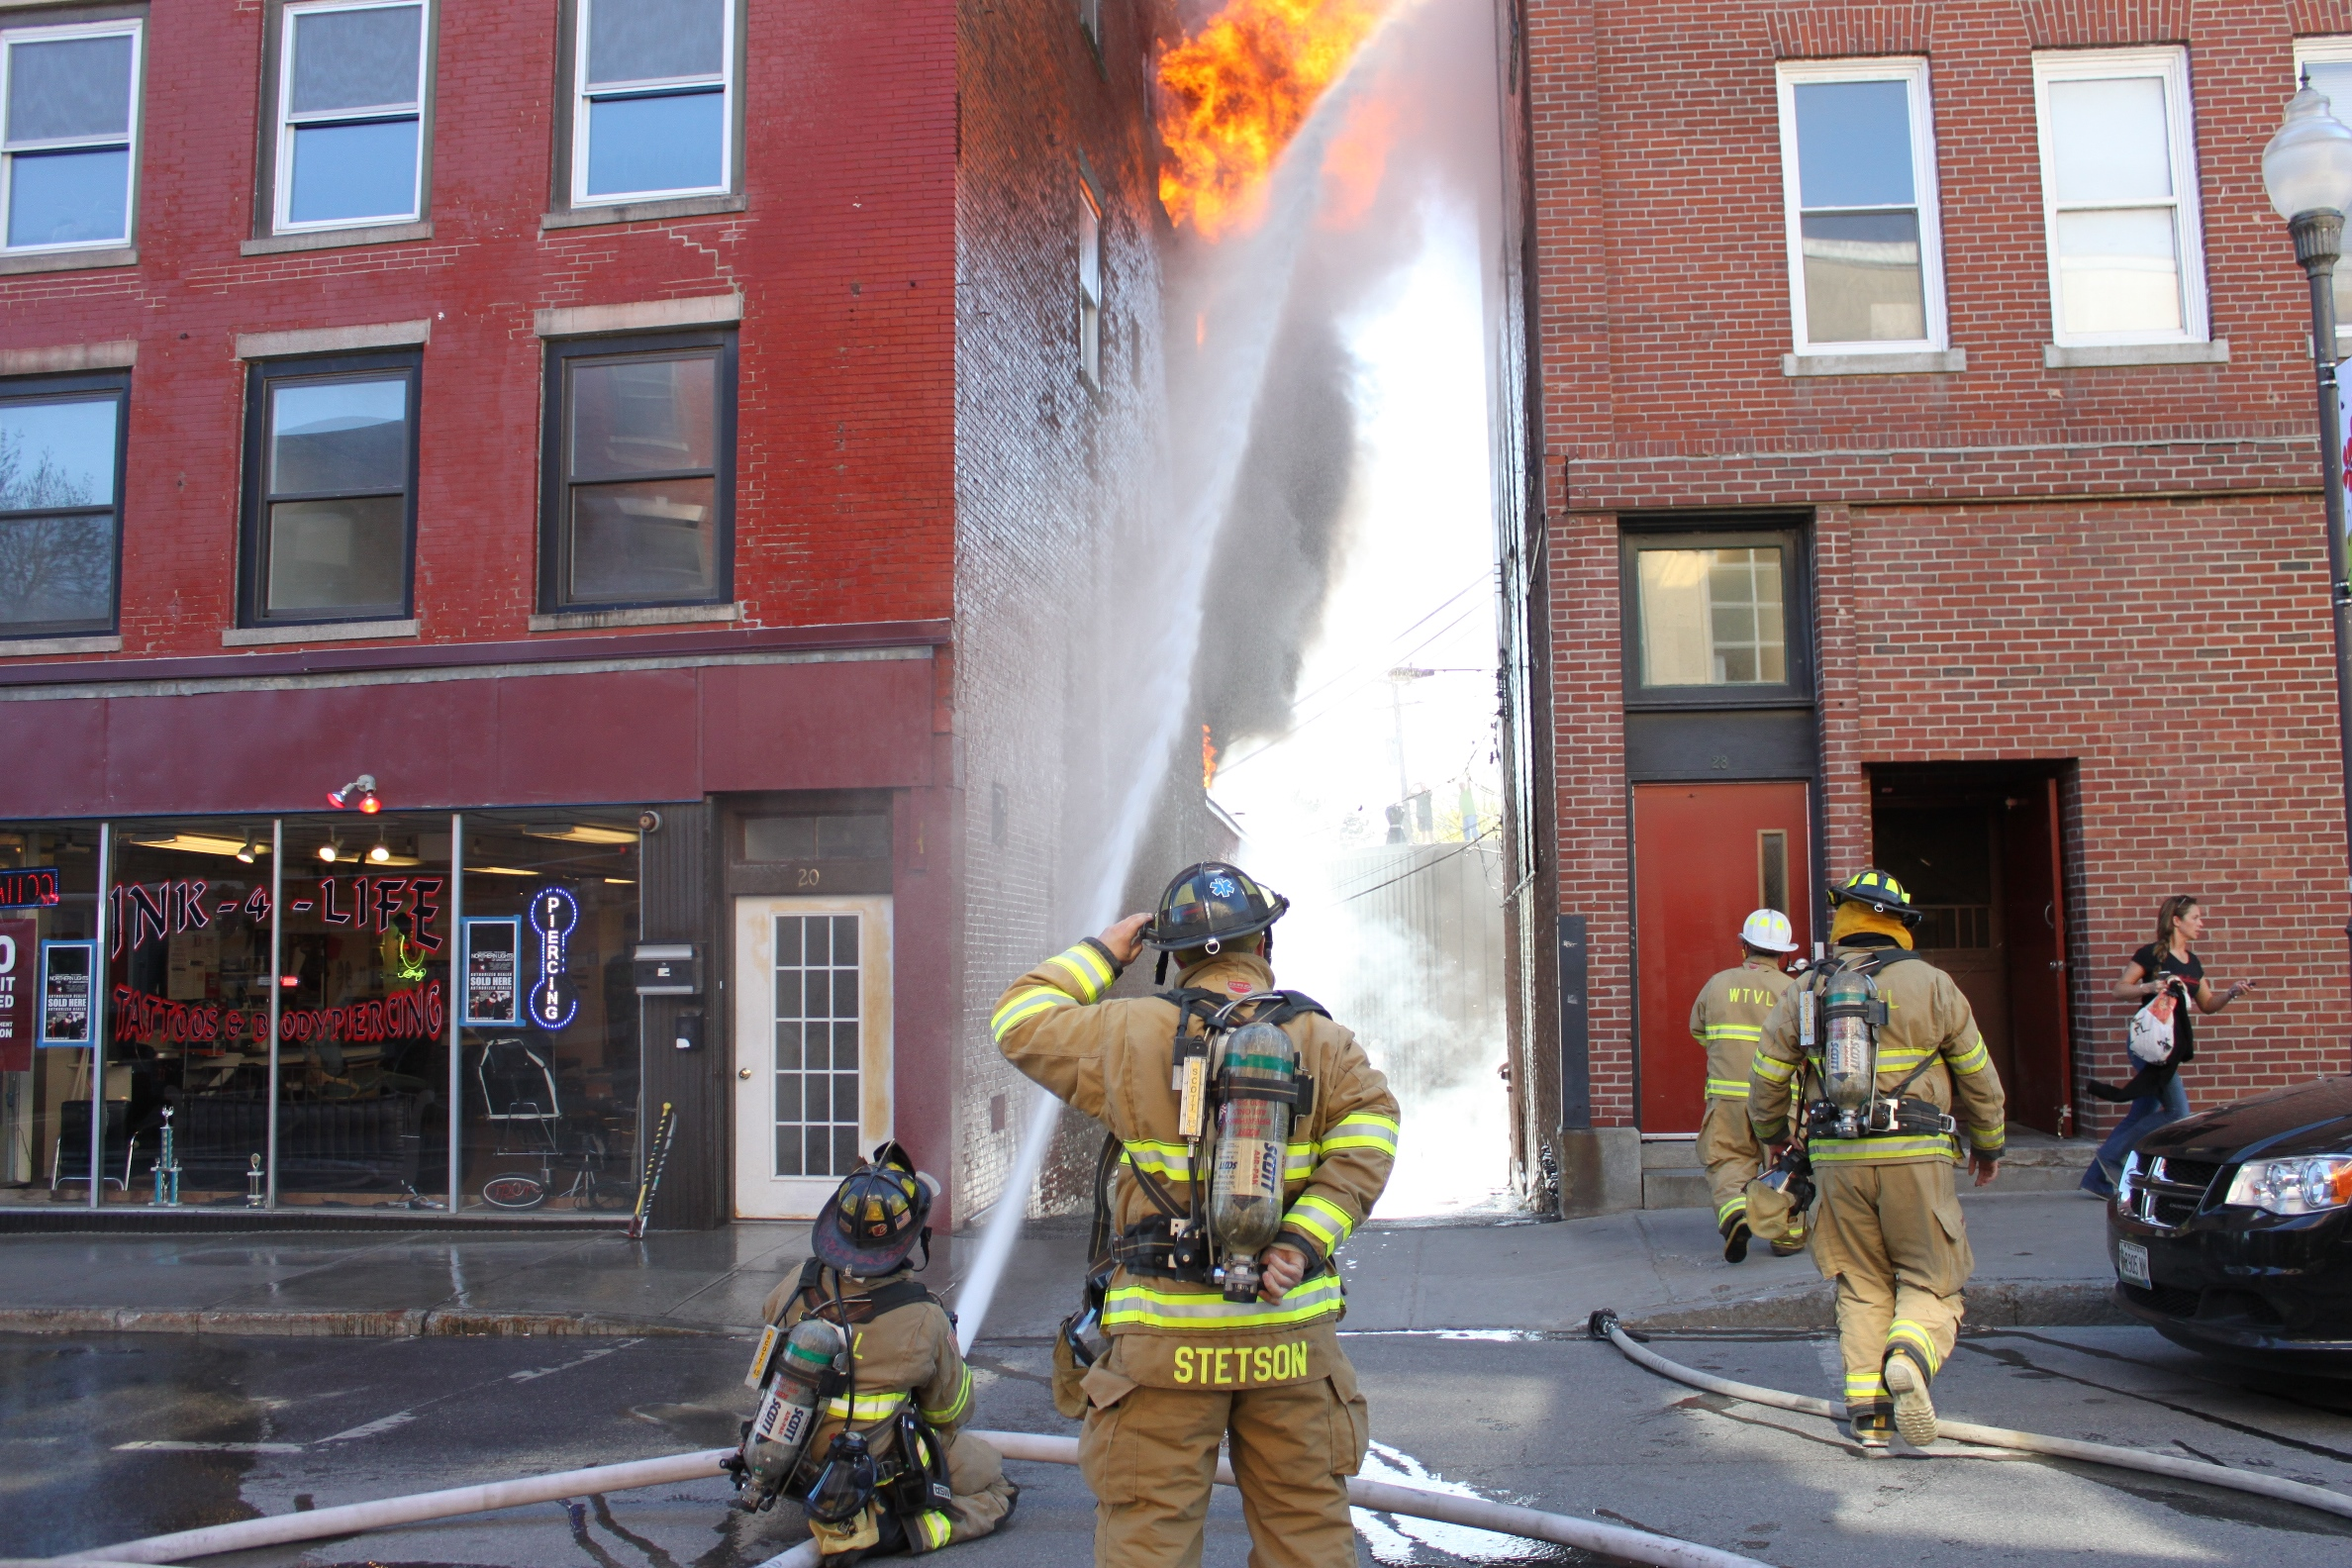 Picture of structure fire on Main Street in 2013